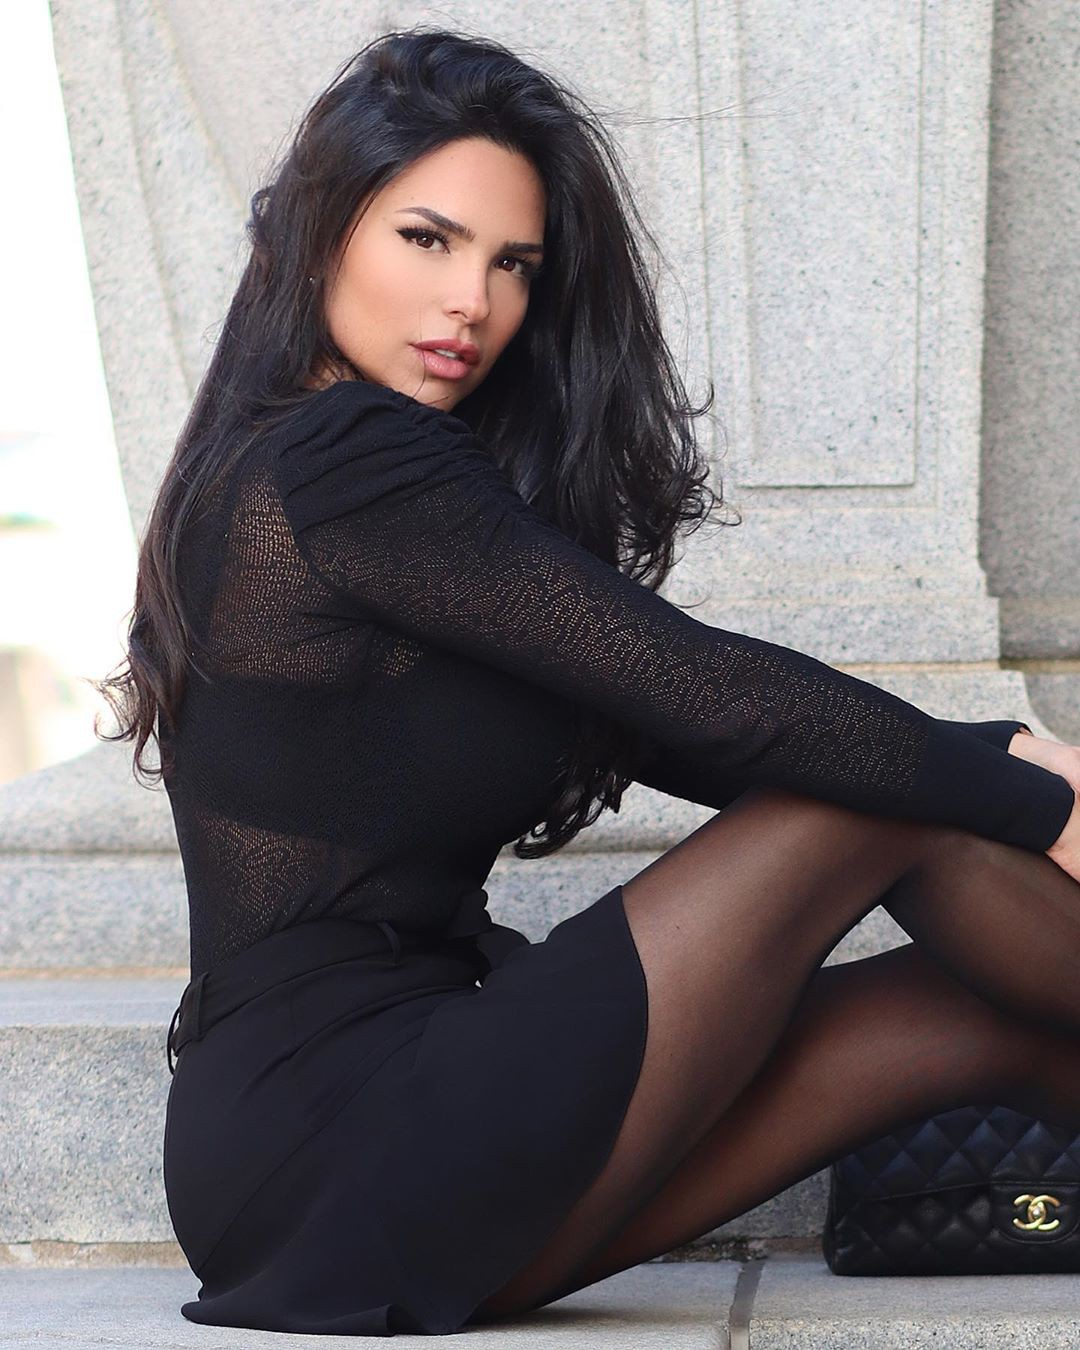 black matching style with tights, female thighs, hot legs